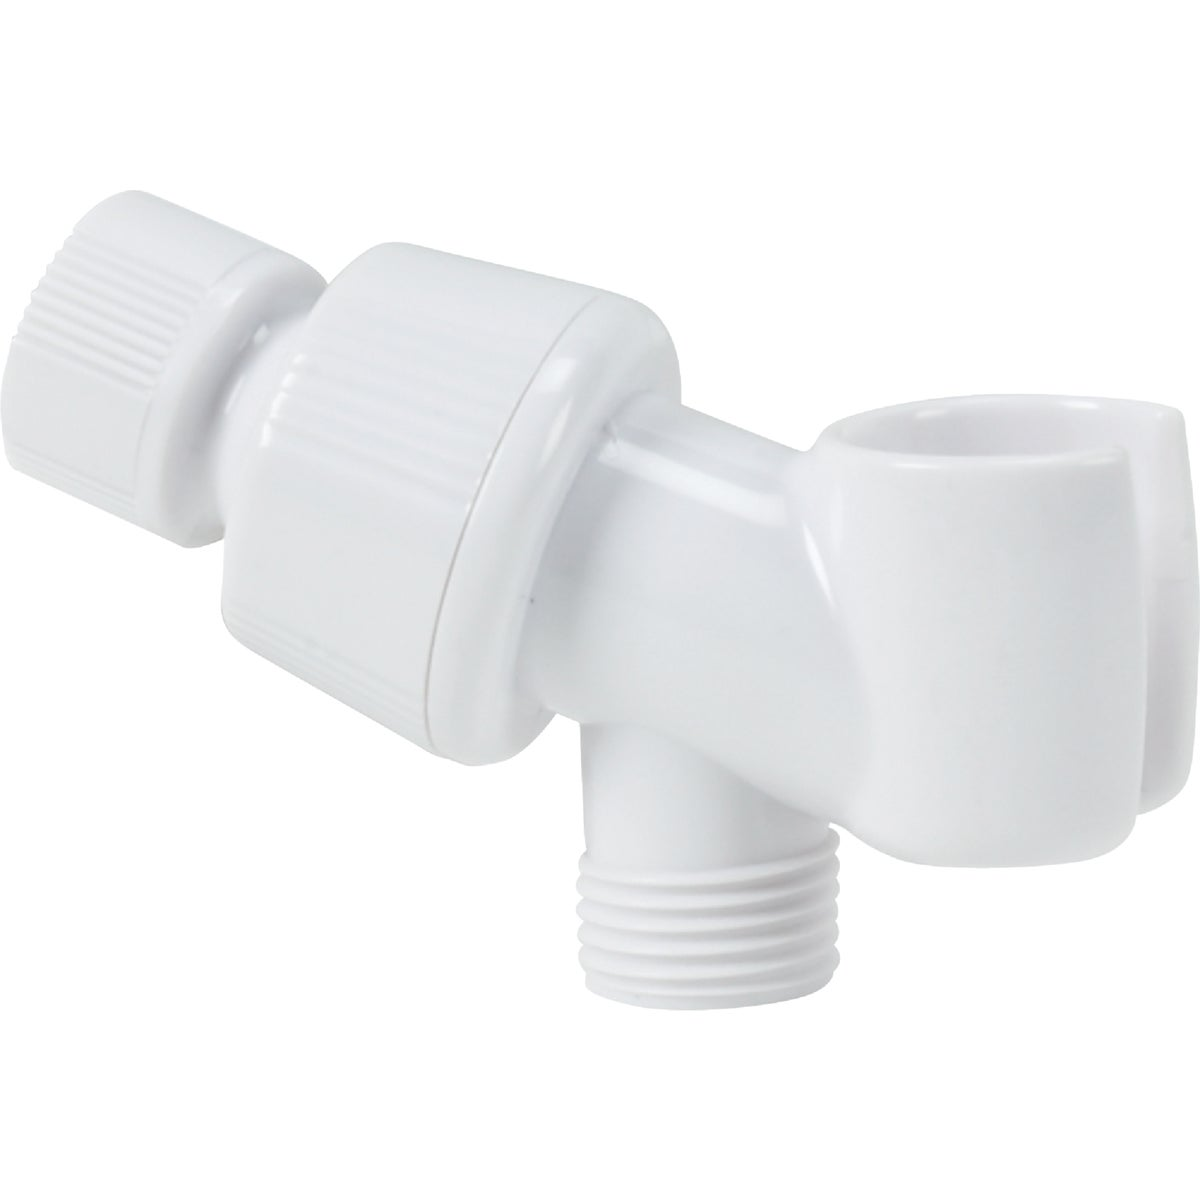 WHITE SHOWER BRACKET - 480347 by Do it Best